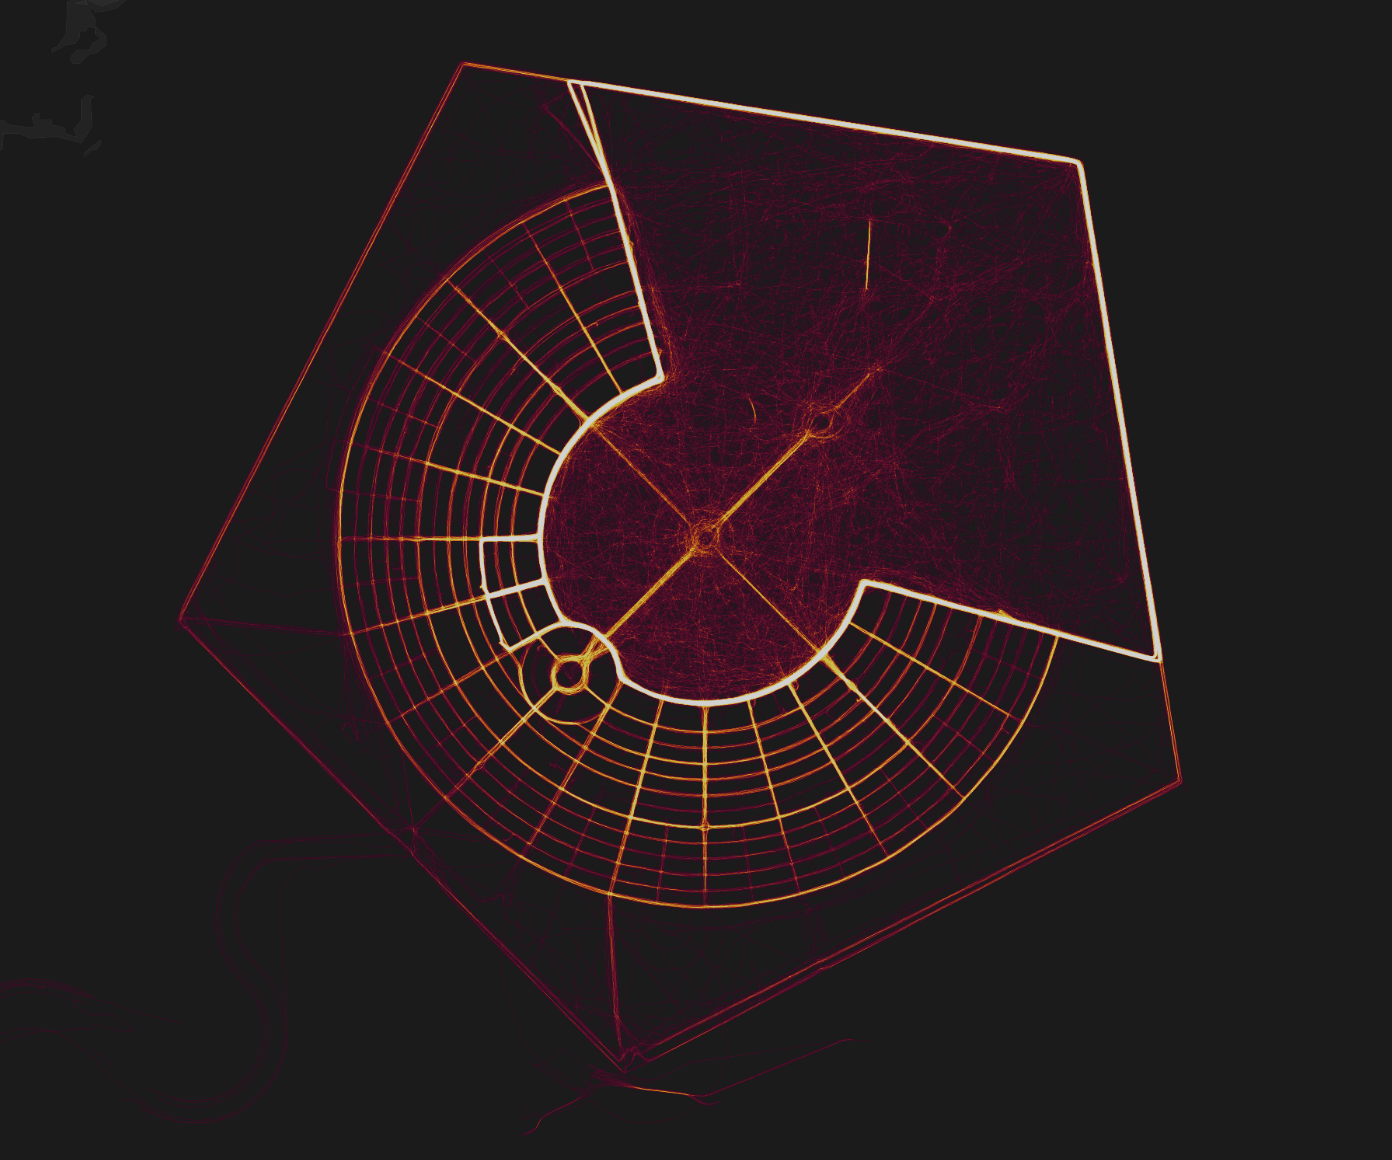 Strava heatmap of Black Rock City, NV